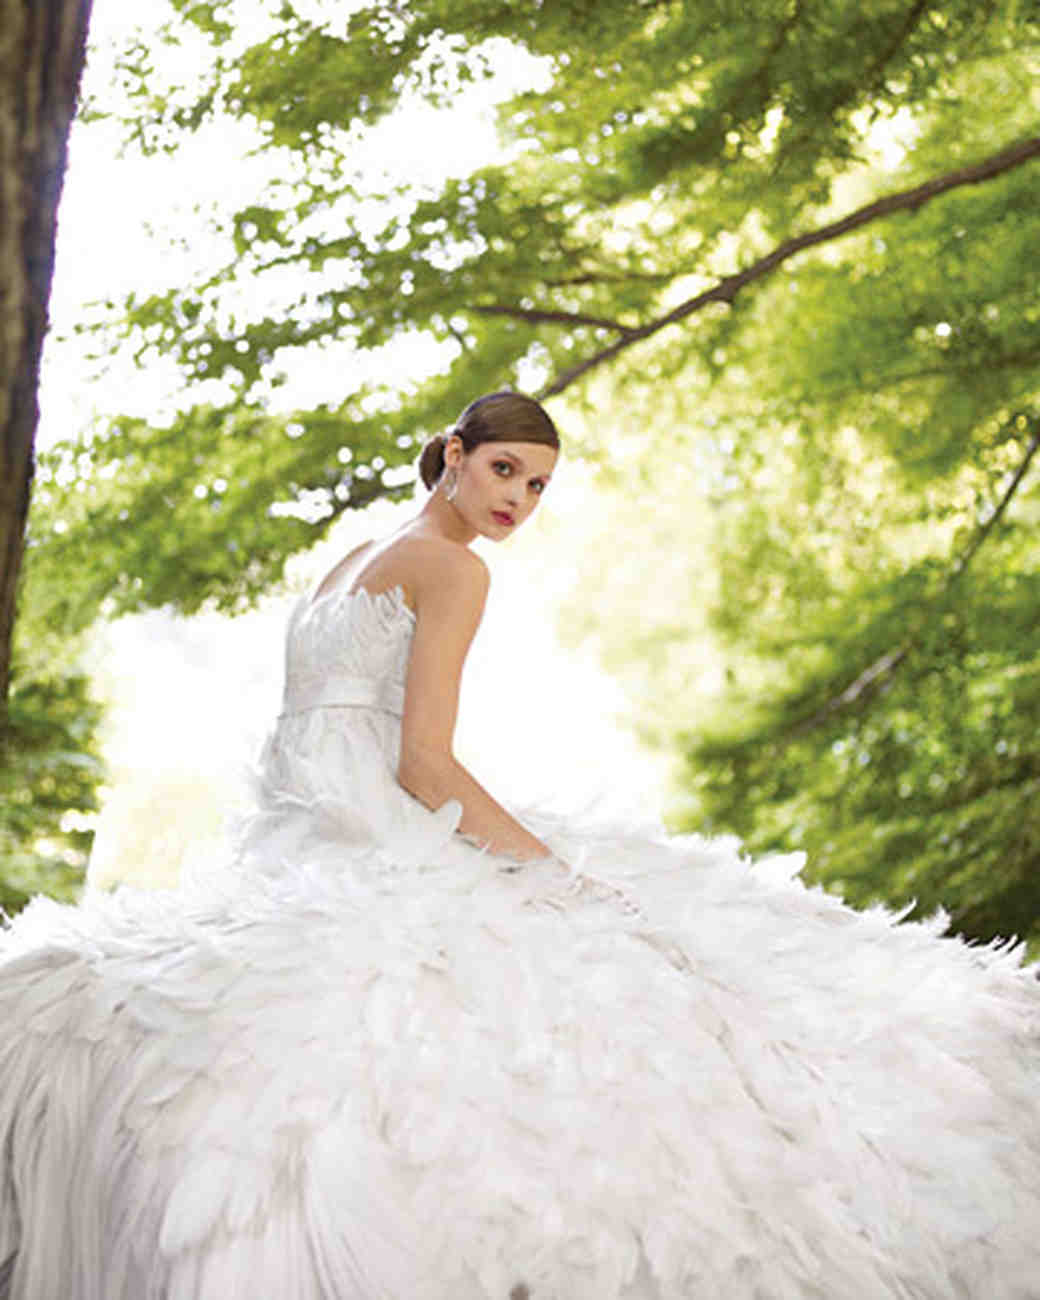 Perfect Gowns For An Outdoor Wedding: Mountain Themed Wedding Dress At Websimilar.org